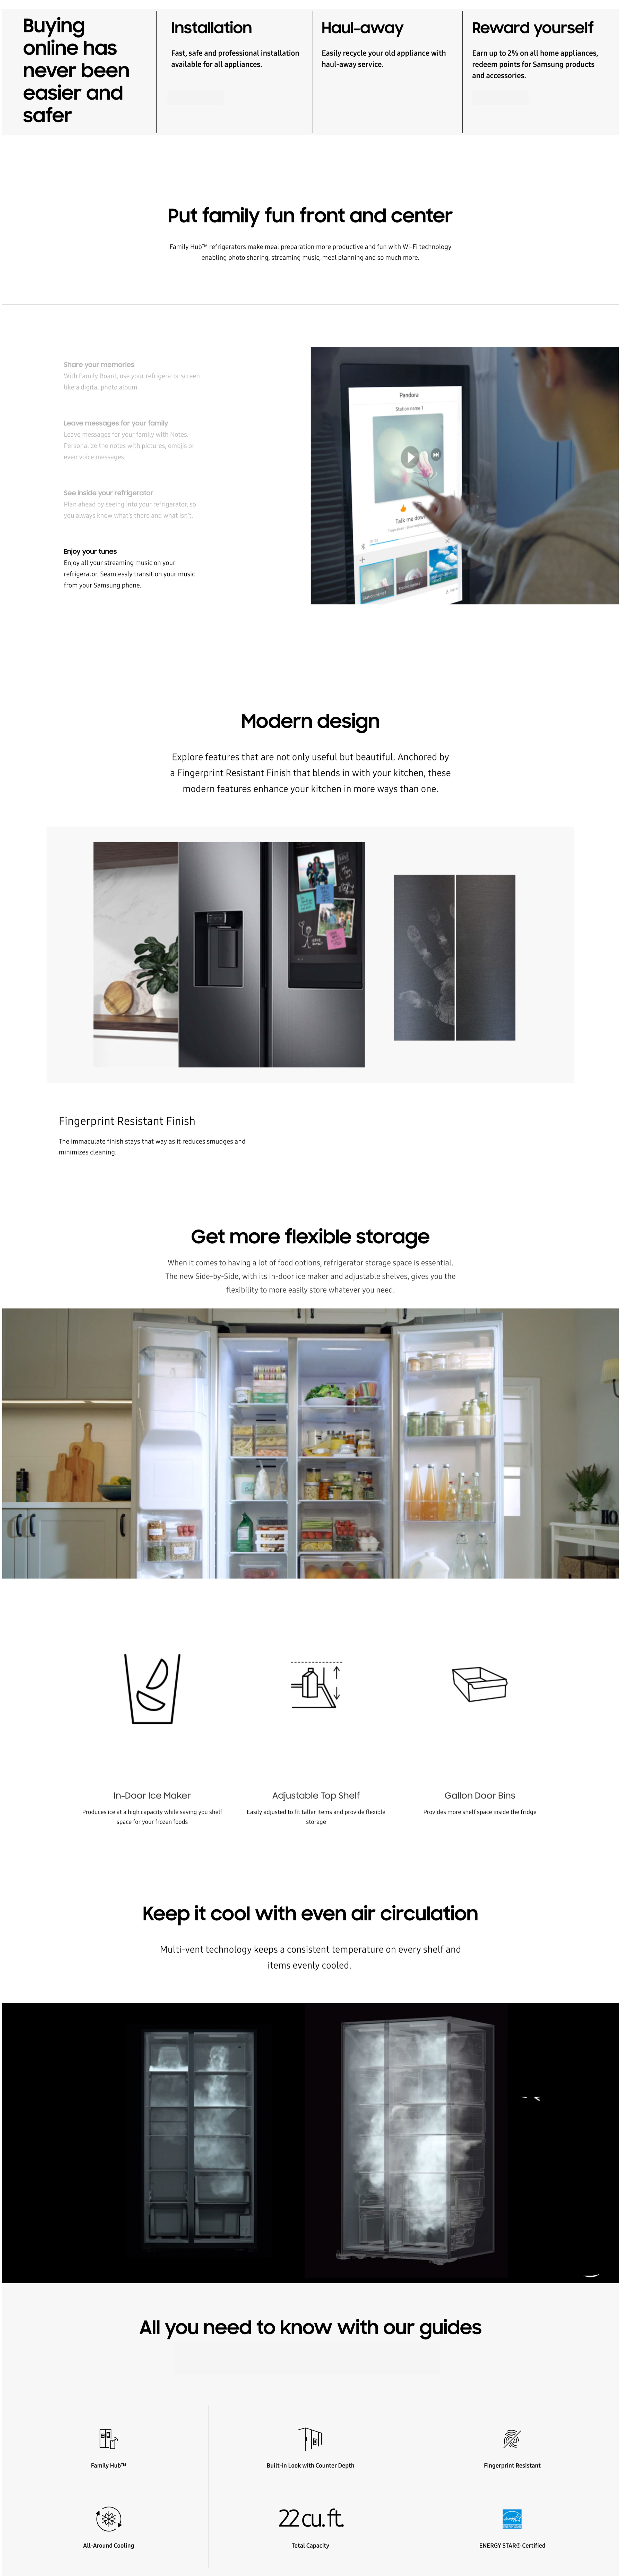 screencapture9-samsung-us-home-appliances-refrigerators-side-by-side-22-cu-ft-counter-depth-side-by-side-refrigerator-in-stainless-steel-rs22t5201sr-aa-2020-04-18-19-45-52.jpg